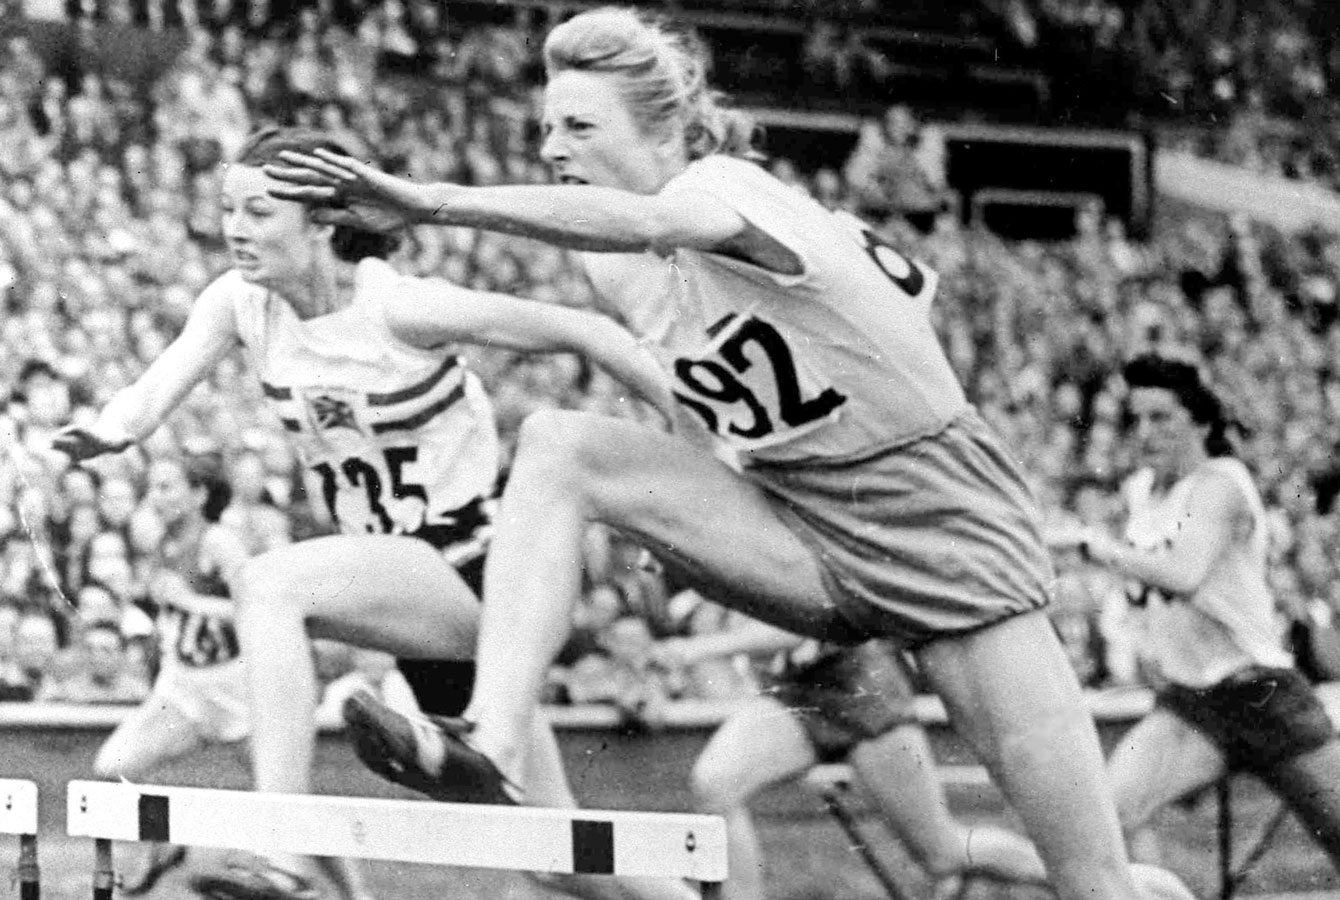 Fanny Blankers-Koen leaps her way to an 80m hurdles Olympic gold medal at London 1948.